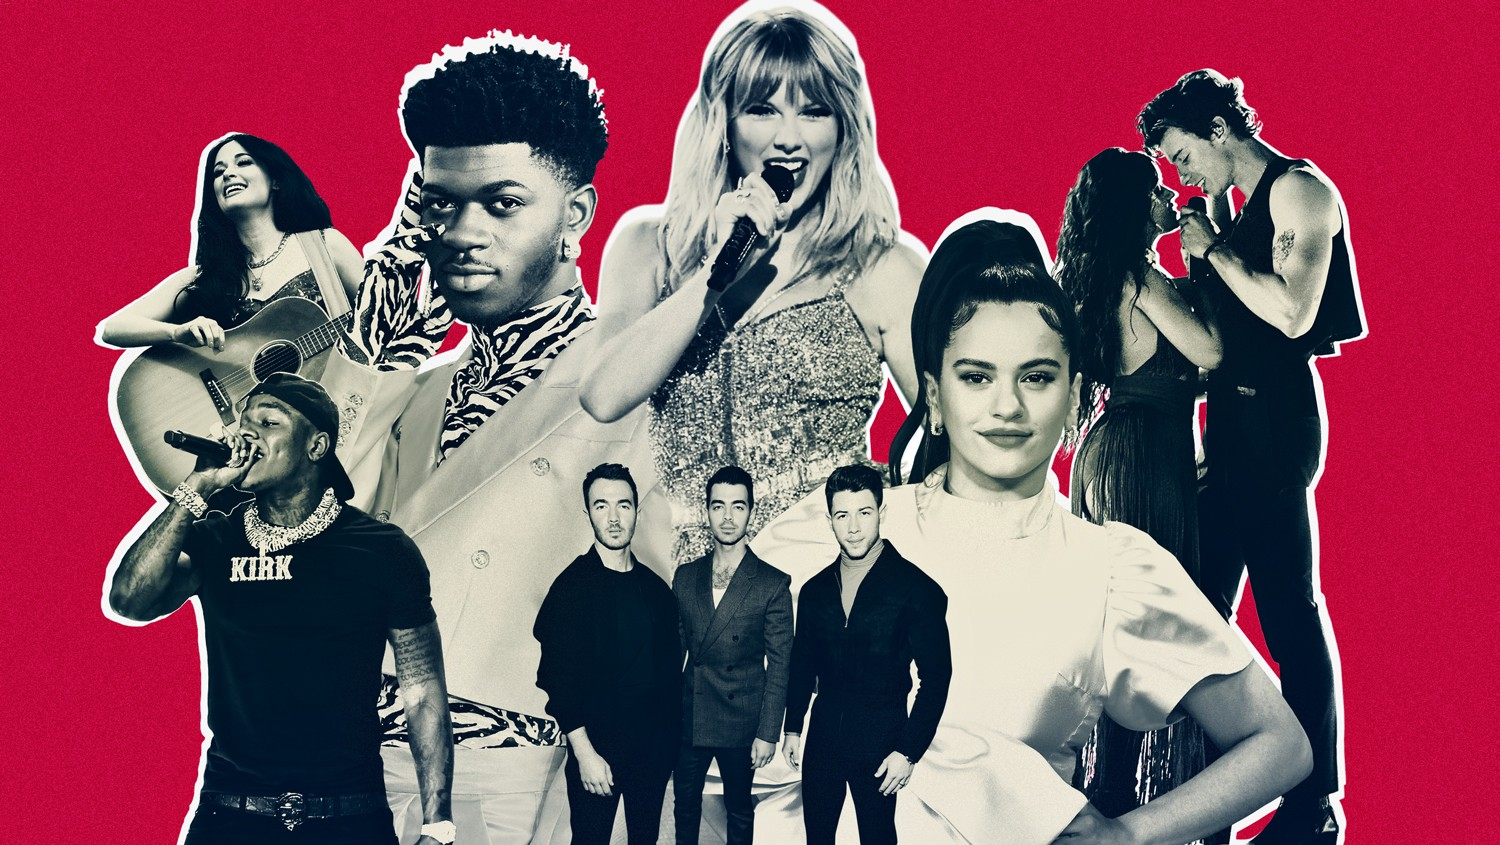 Kacey Musgraves, DaBaby, Lil Nas X, Taylor Swift, Jonas Brothers, Rosalía, Camila Cabello and Shawn Mendes